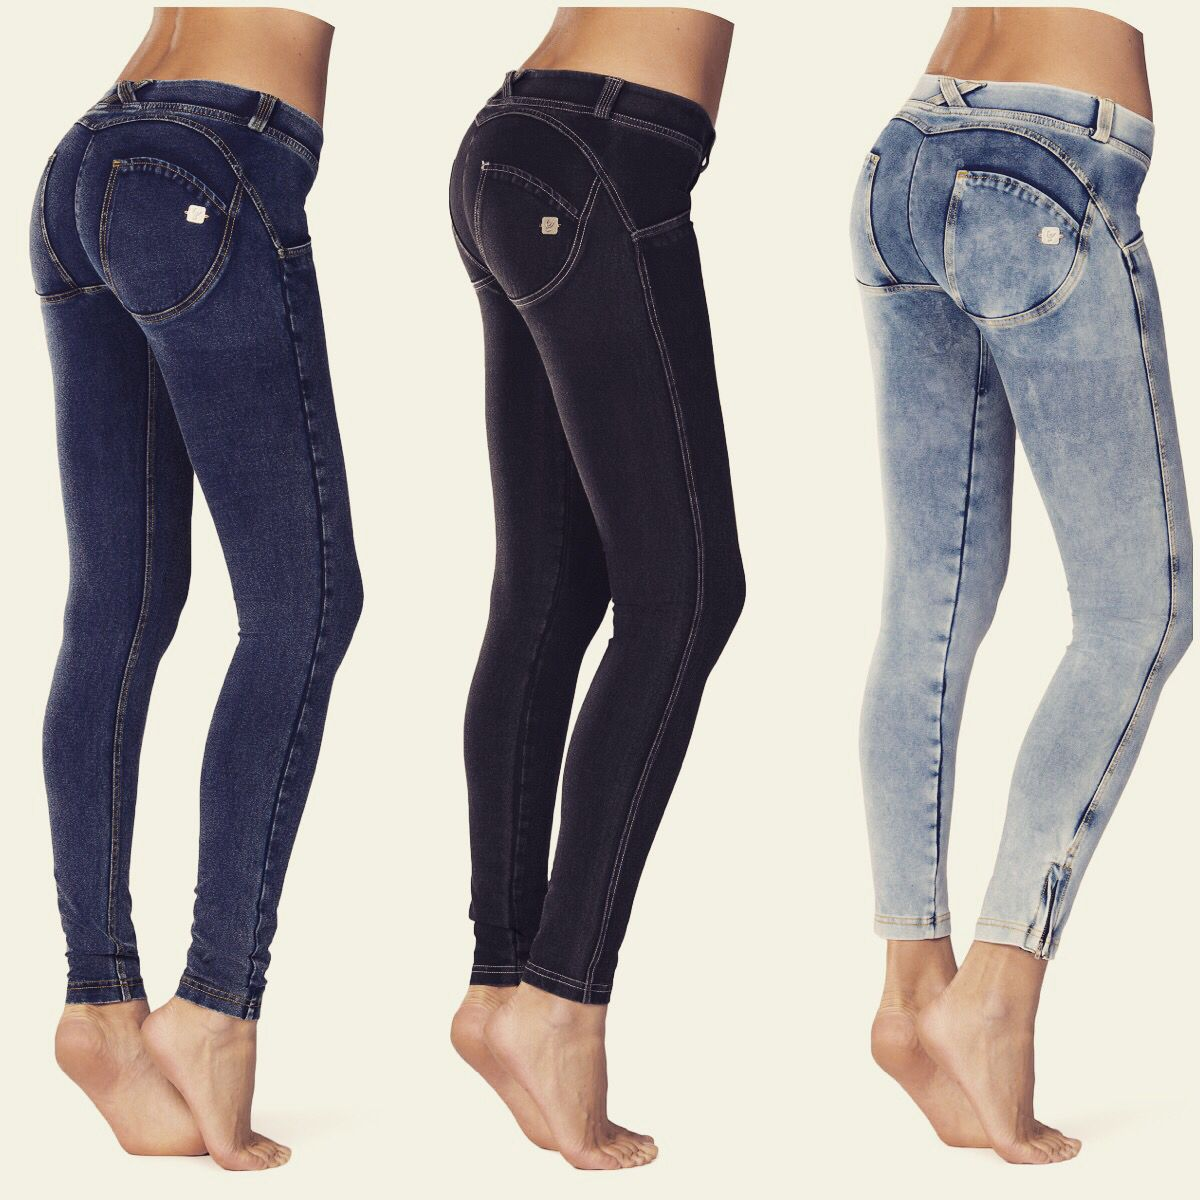 cfb6f07b30837 Freddy Jeans #freddyjeans | Random 2 in 2019 | Fashion pants ...